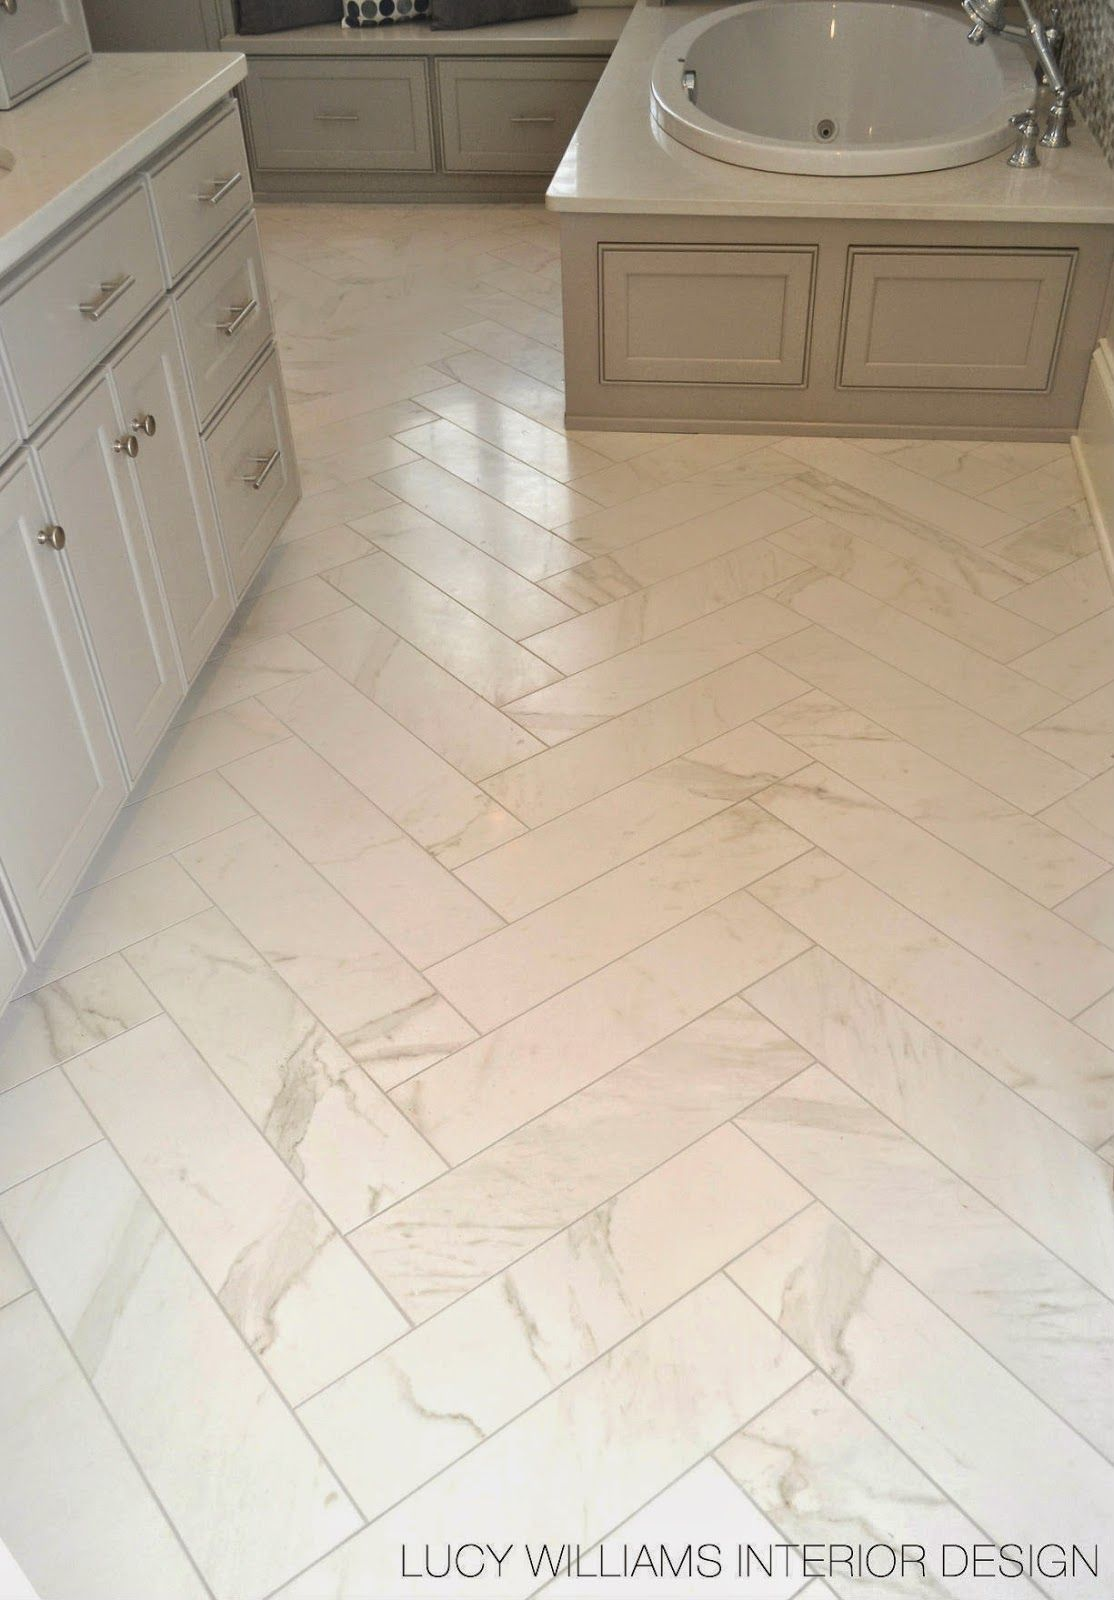 And the floor its porcelain looks just like marble matches the floor looks just like marble matches the countertops perfectly maintenance free as well as the grout dailygadgetfo Images